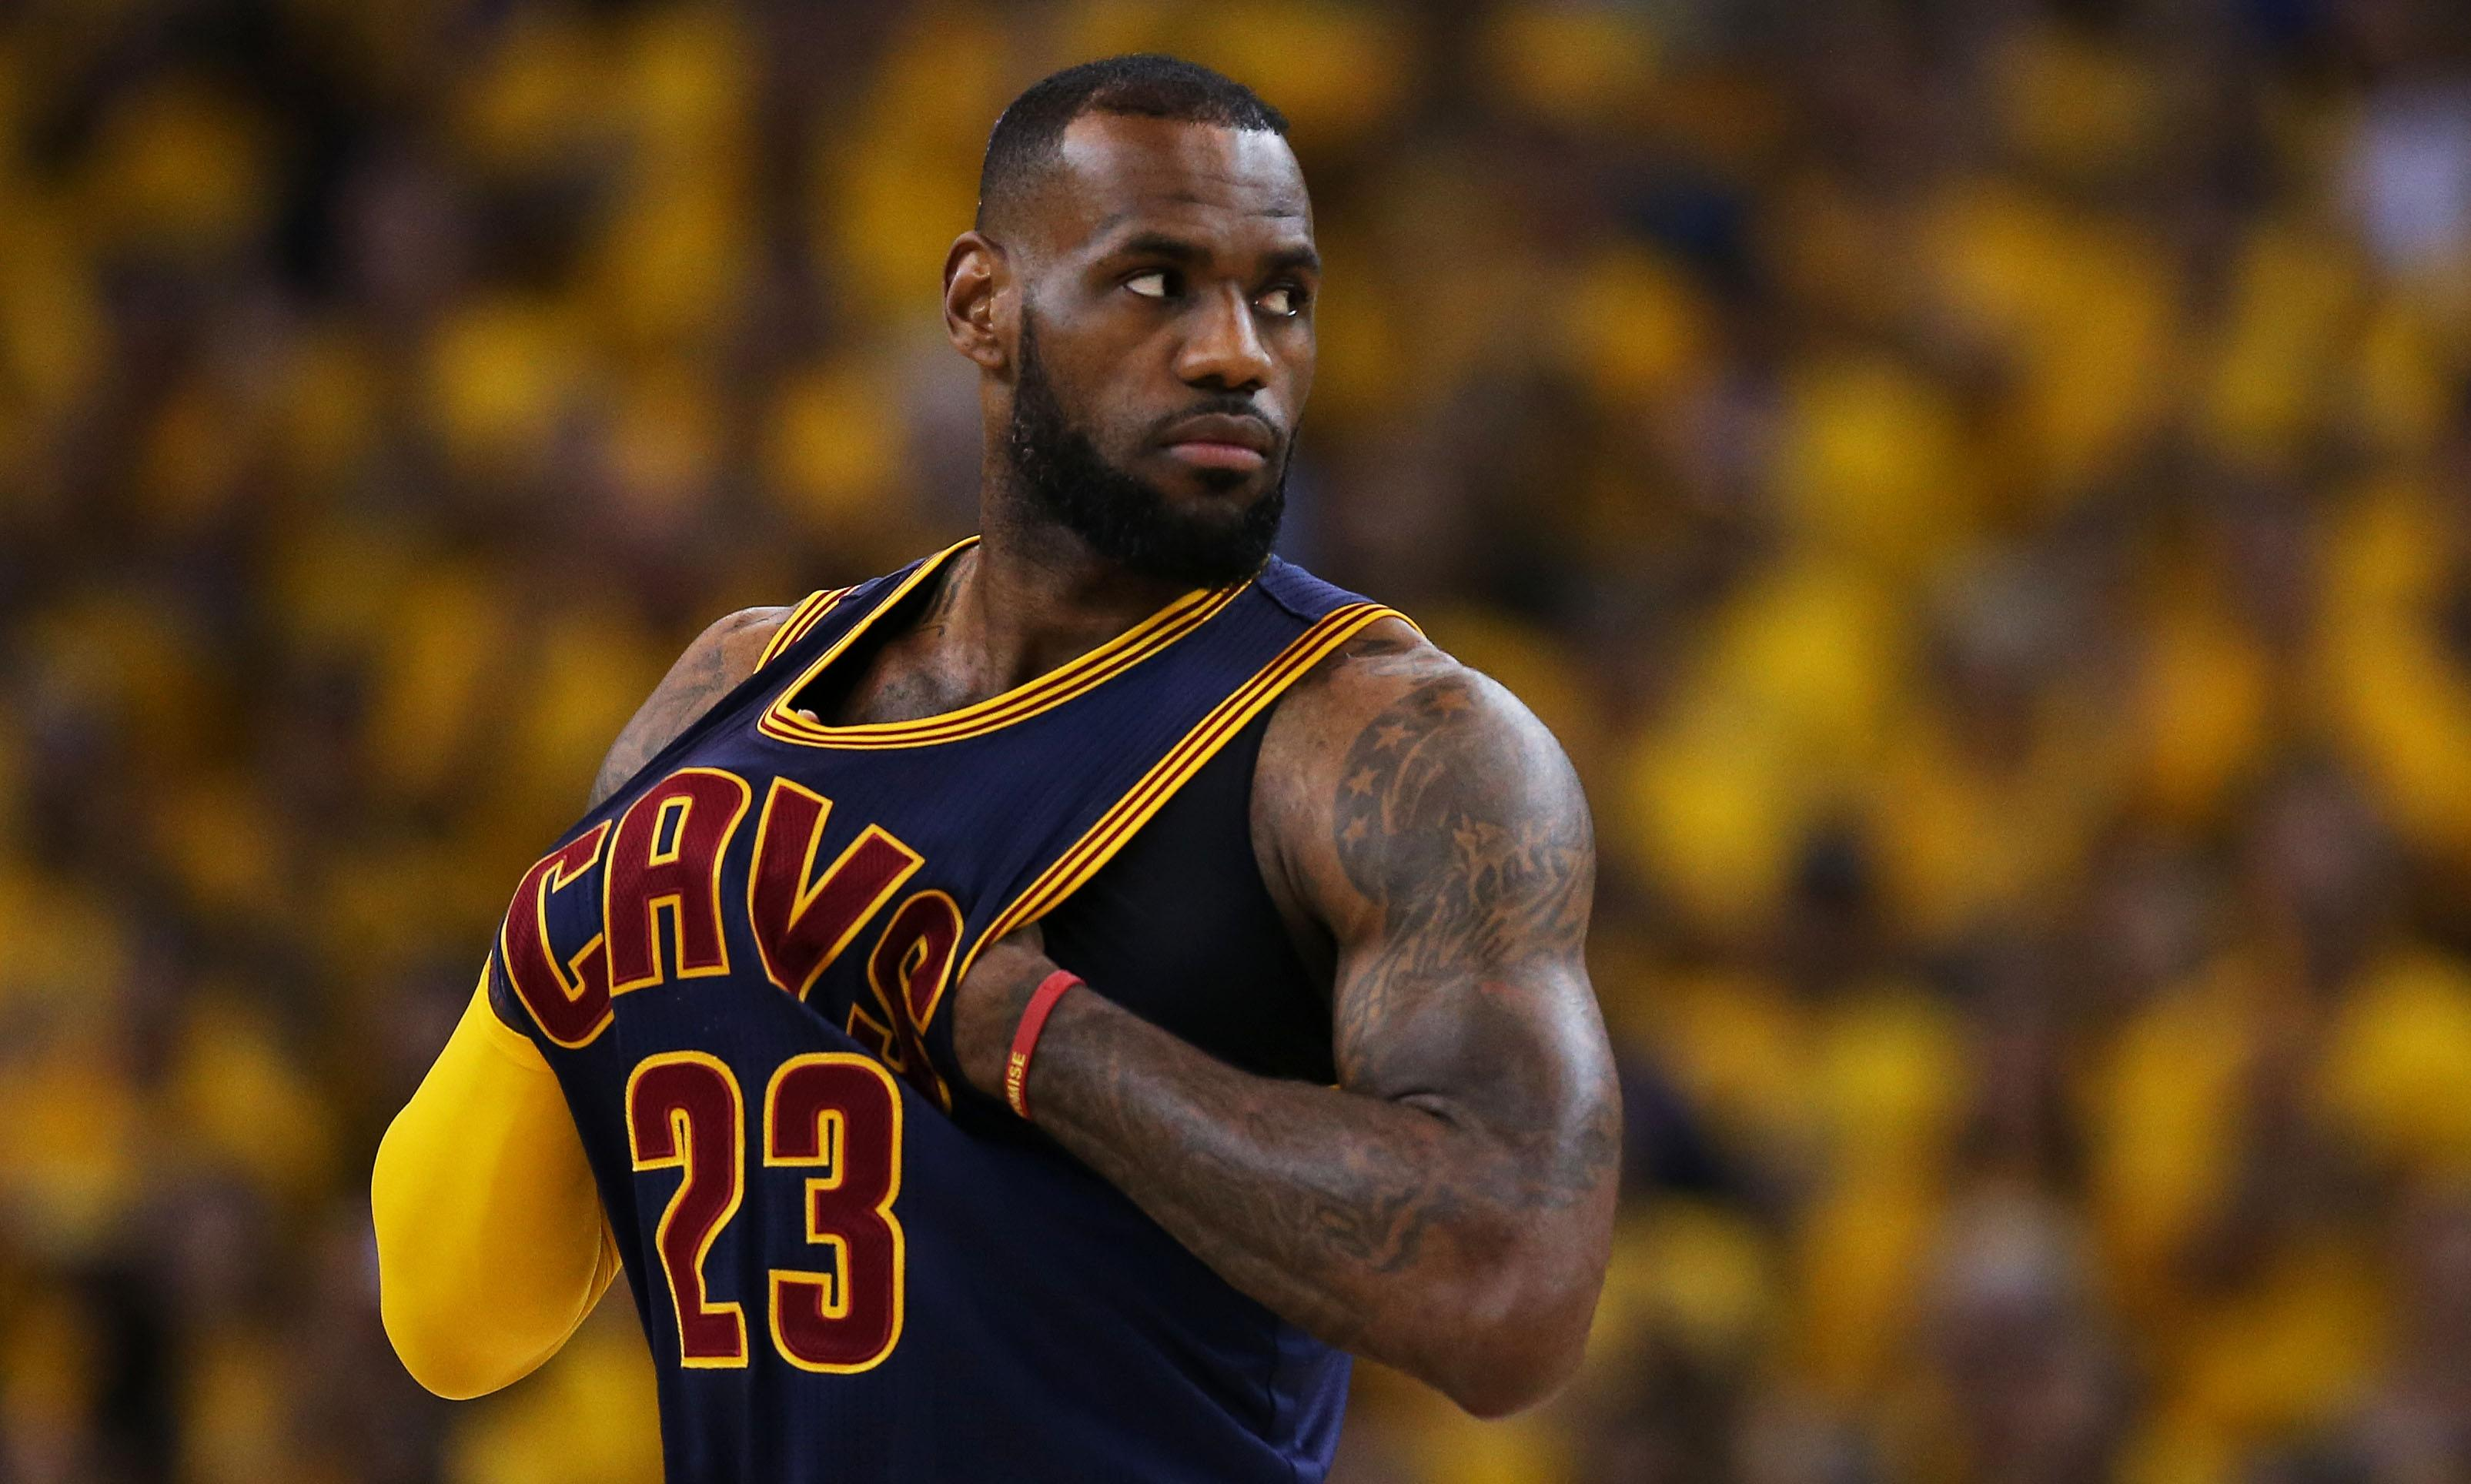 LeBron James confident of NBA finals comeback: 'I'm the best in the world' | Sport | The Guardian